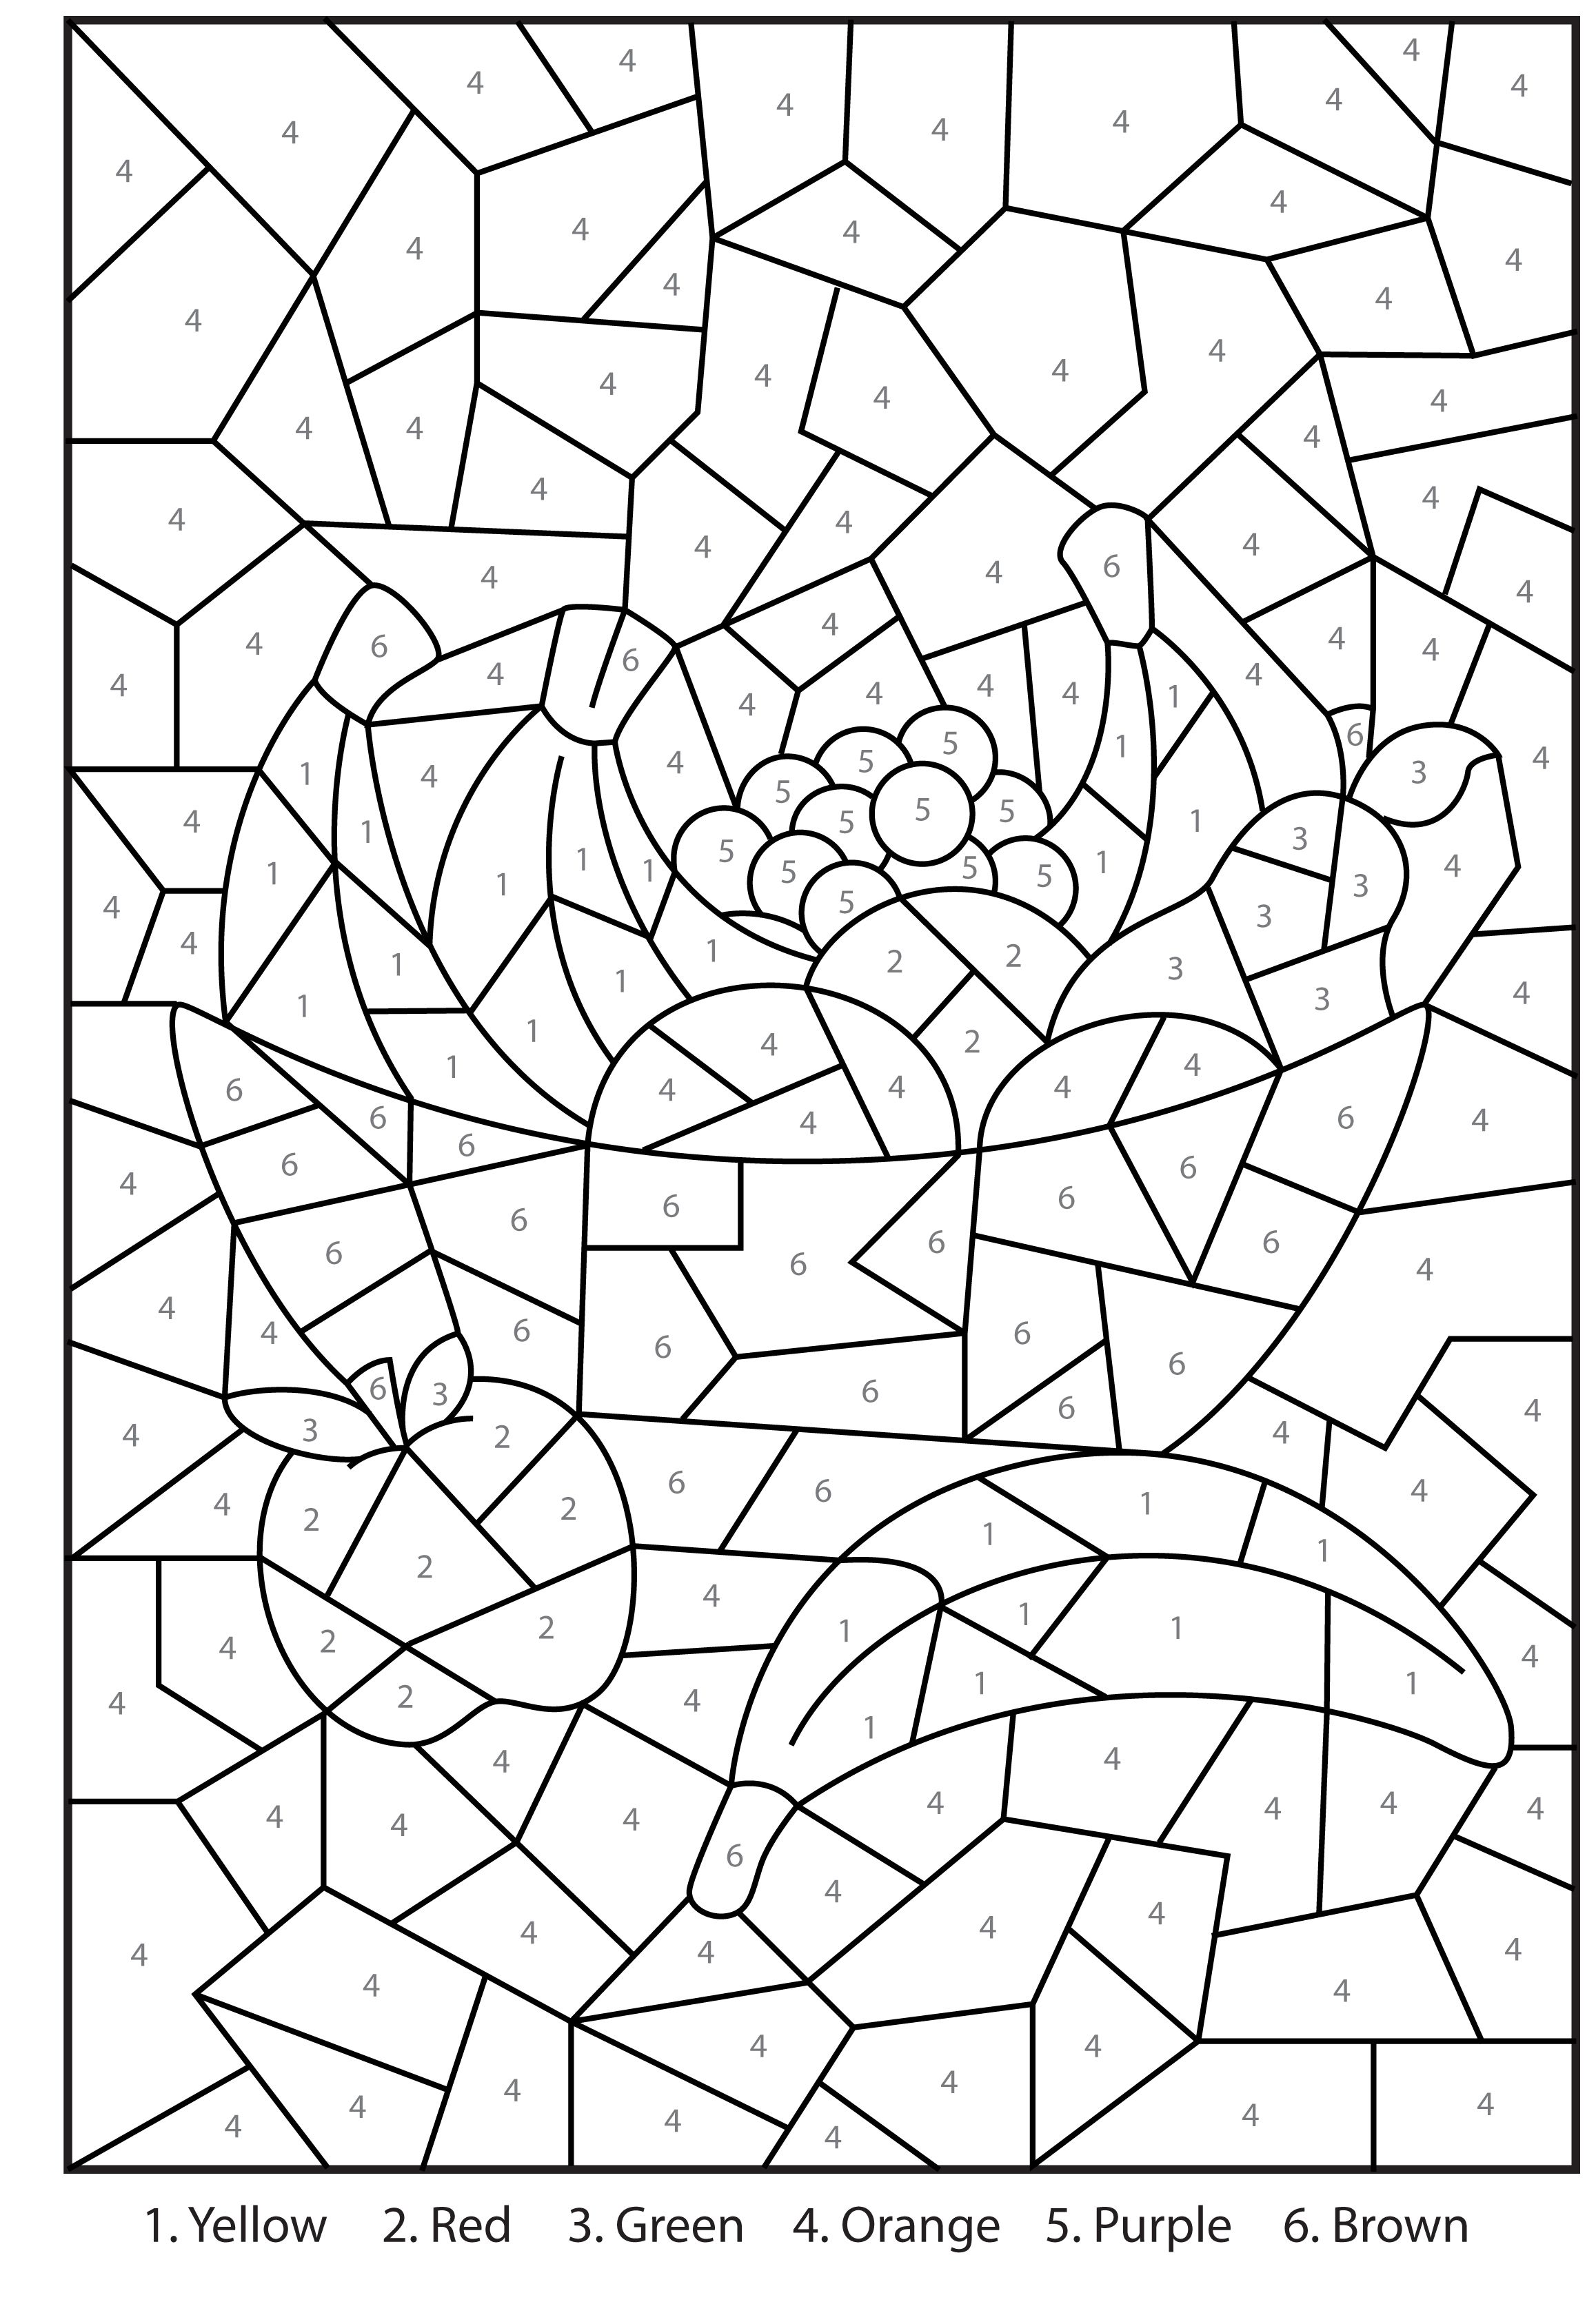 coloring pages color by number # 0